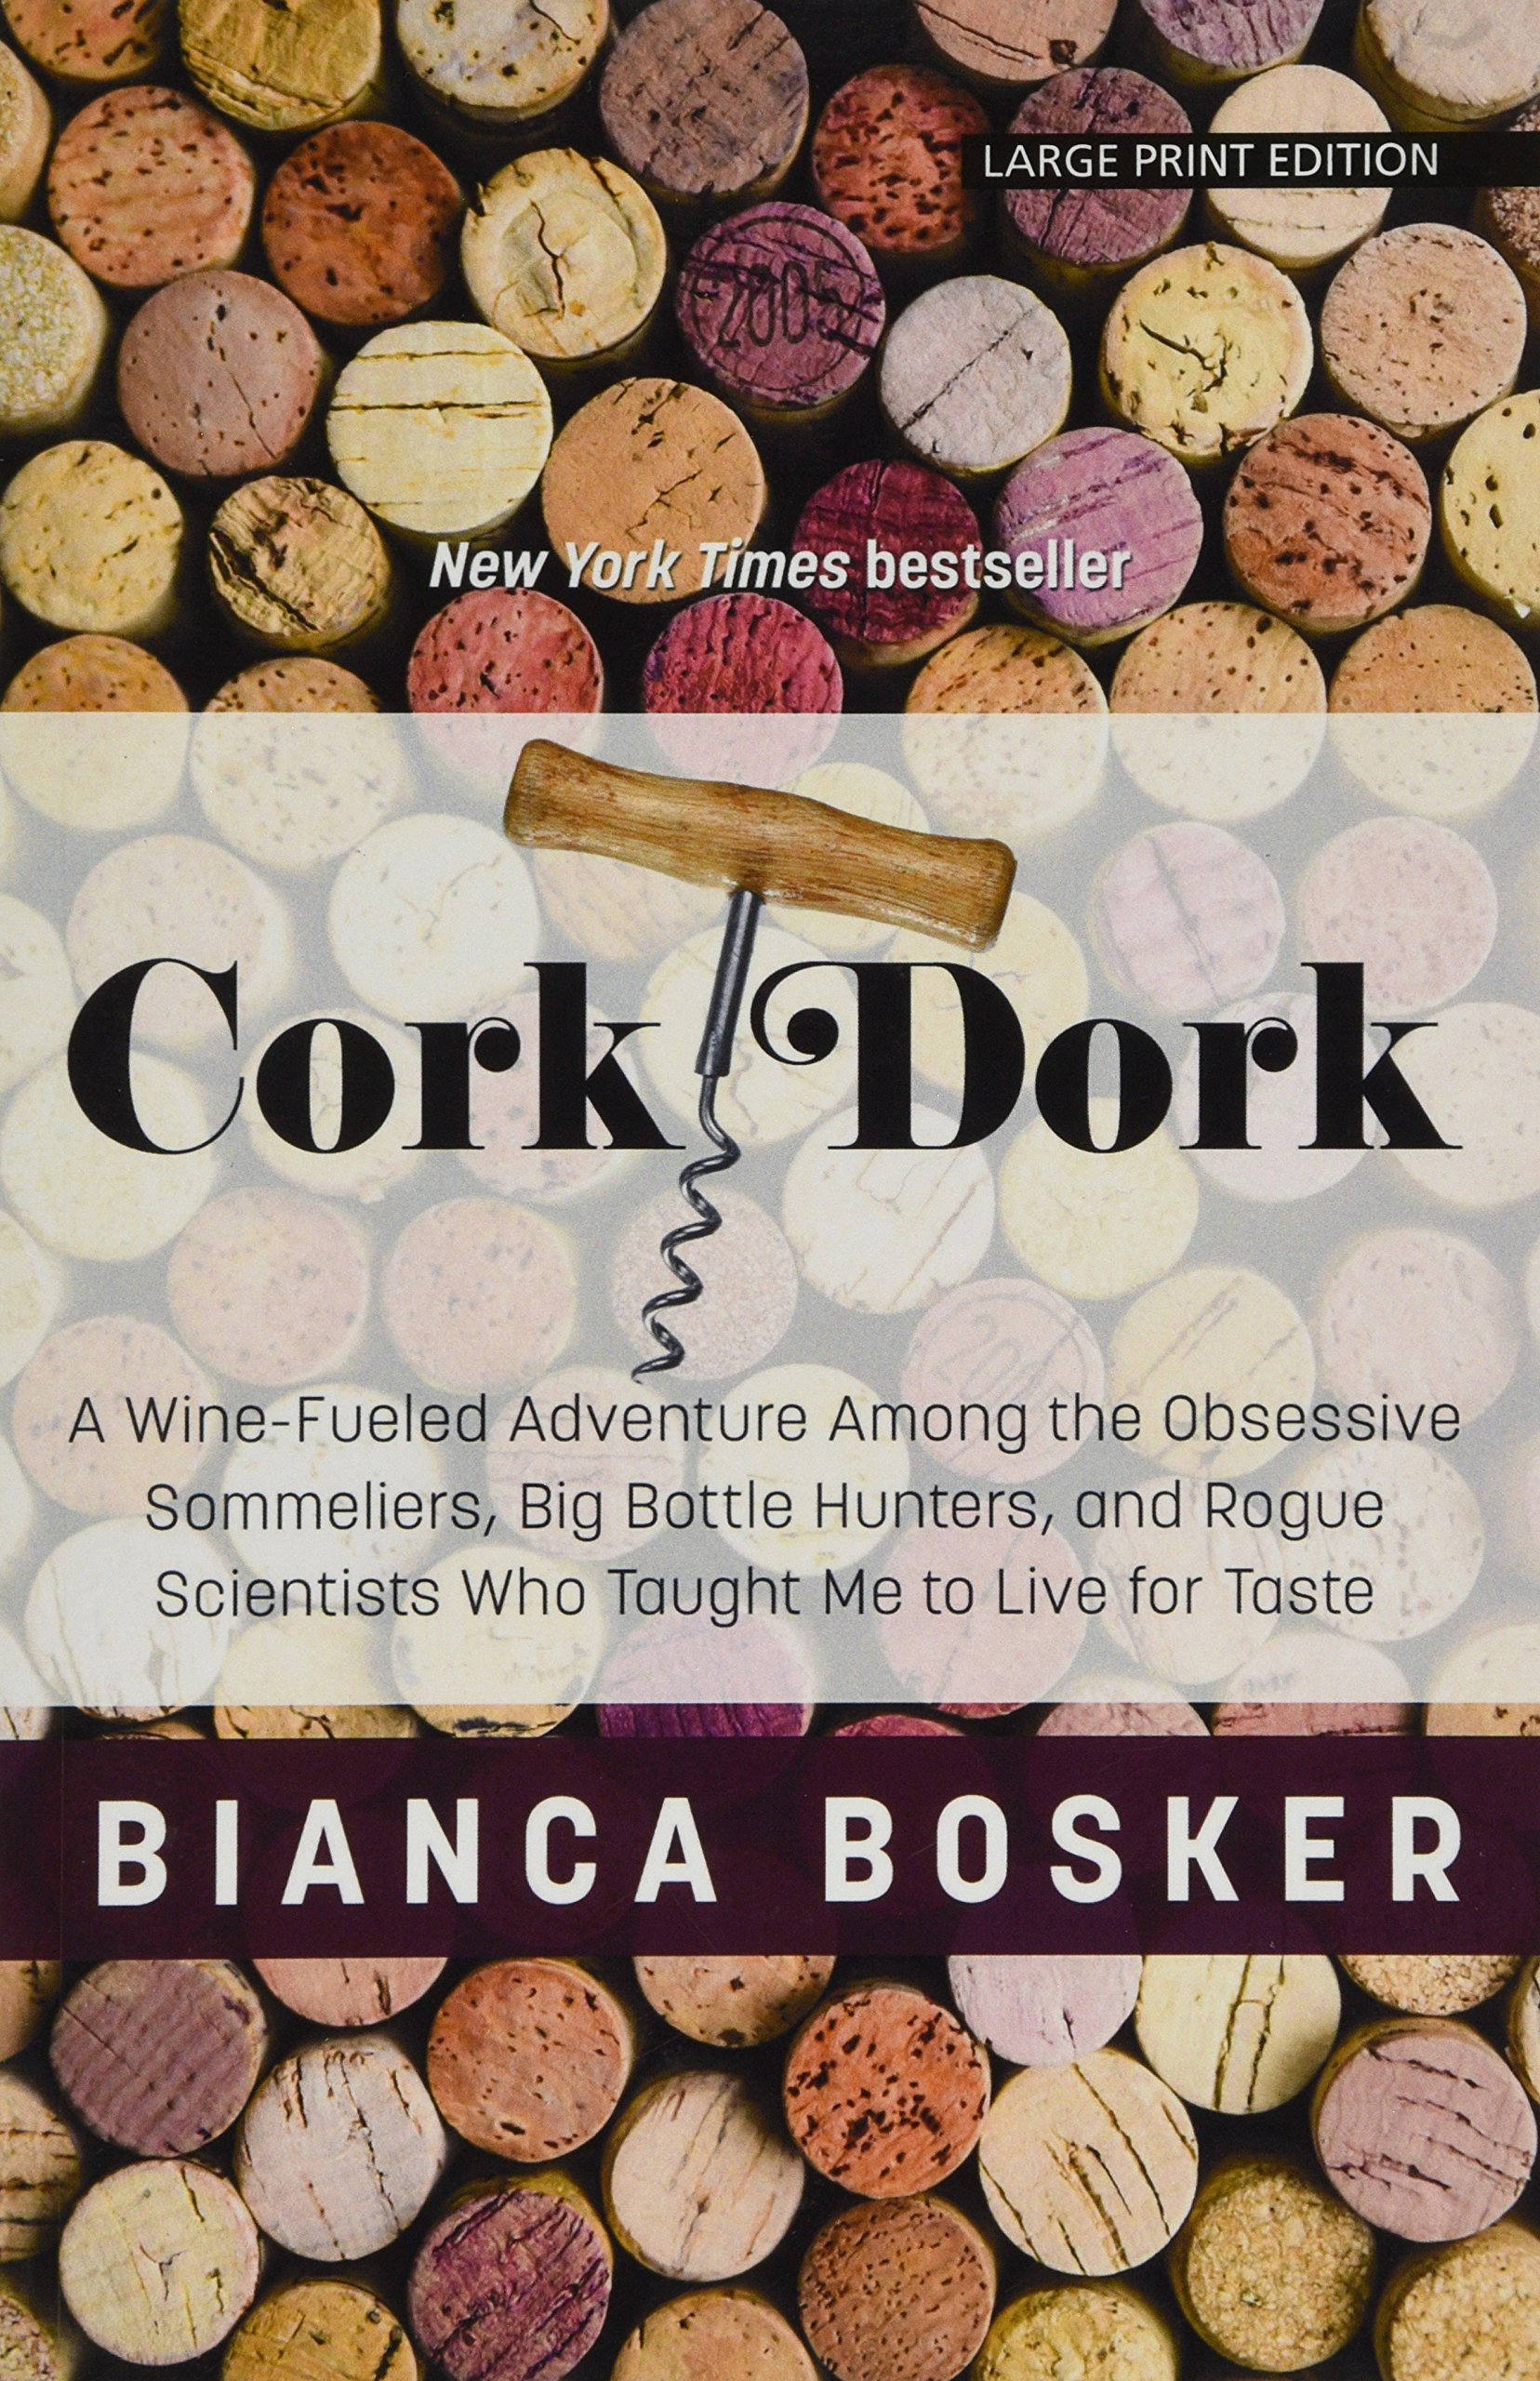 Cork Dork: A Wine-Fueled Adventure Among the Obsessive Sommeliers, Big Bottle Hunters, and Rogue Scientists Who Taught Me to Live for the Taste (Thorndike Press Large Print Lifestyles)